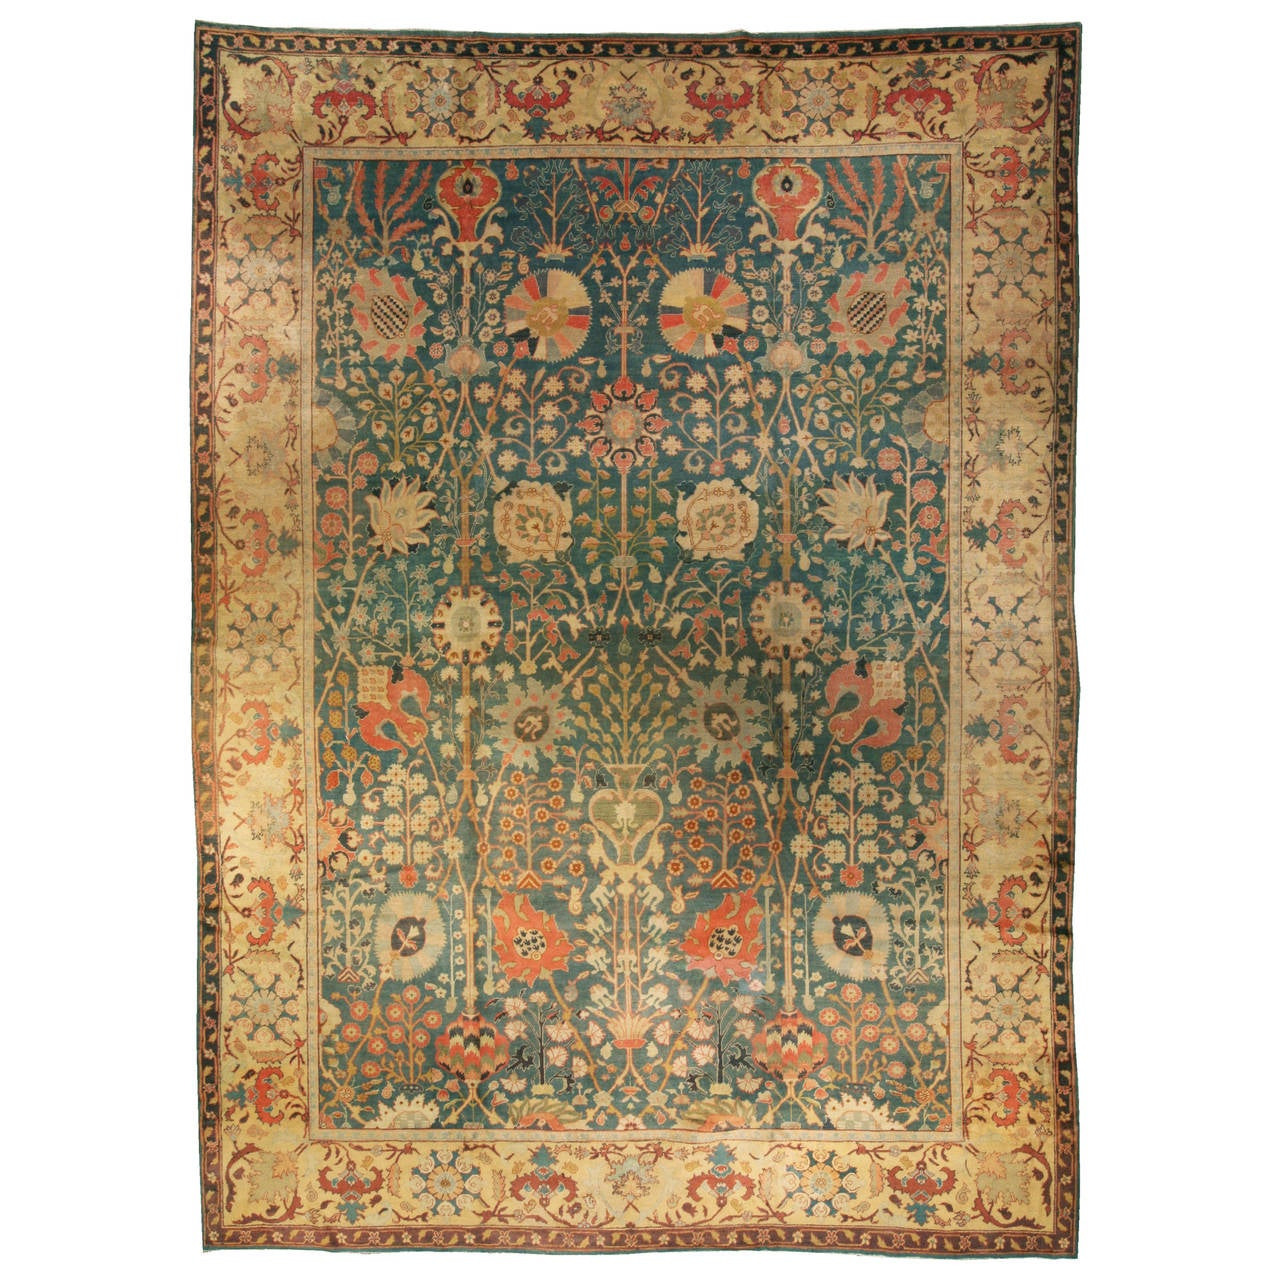 Antique indian rug for sale at 1stdibs for Home inspired by india rug